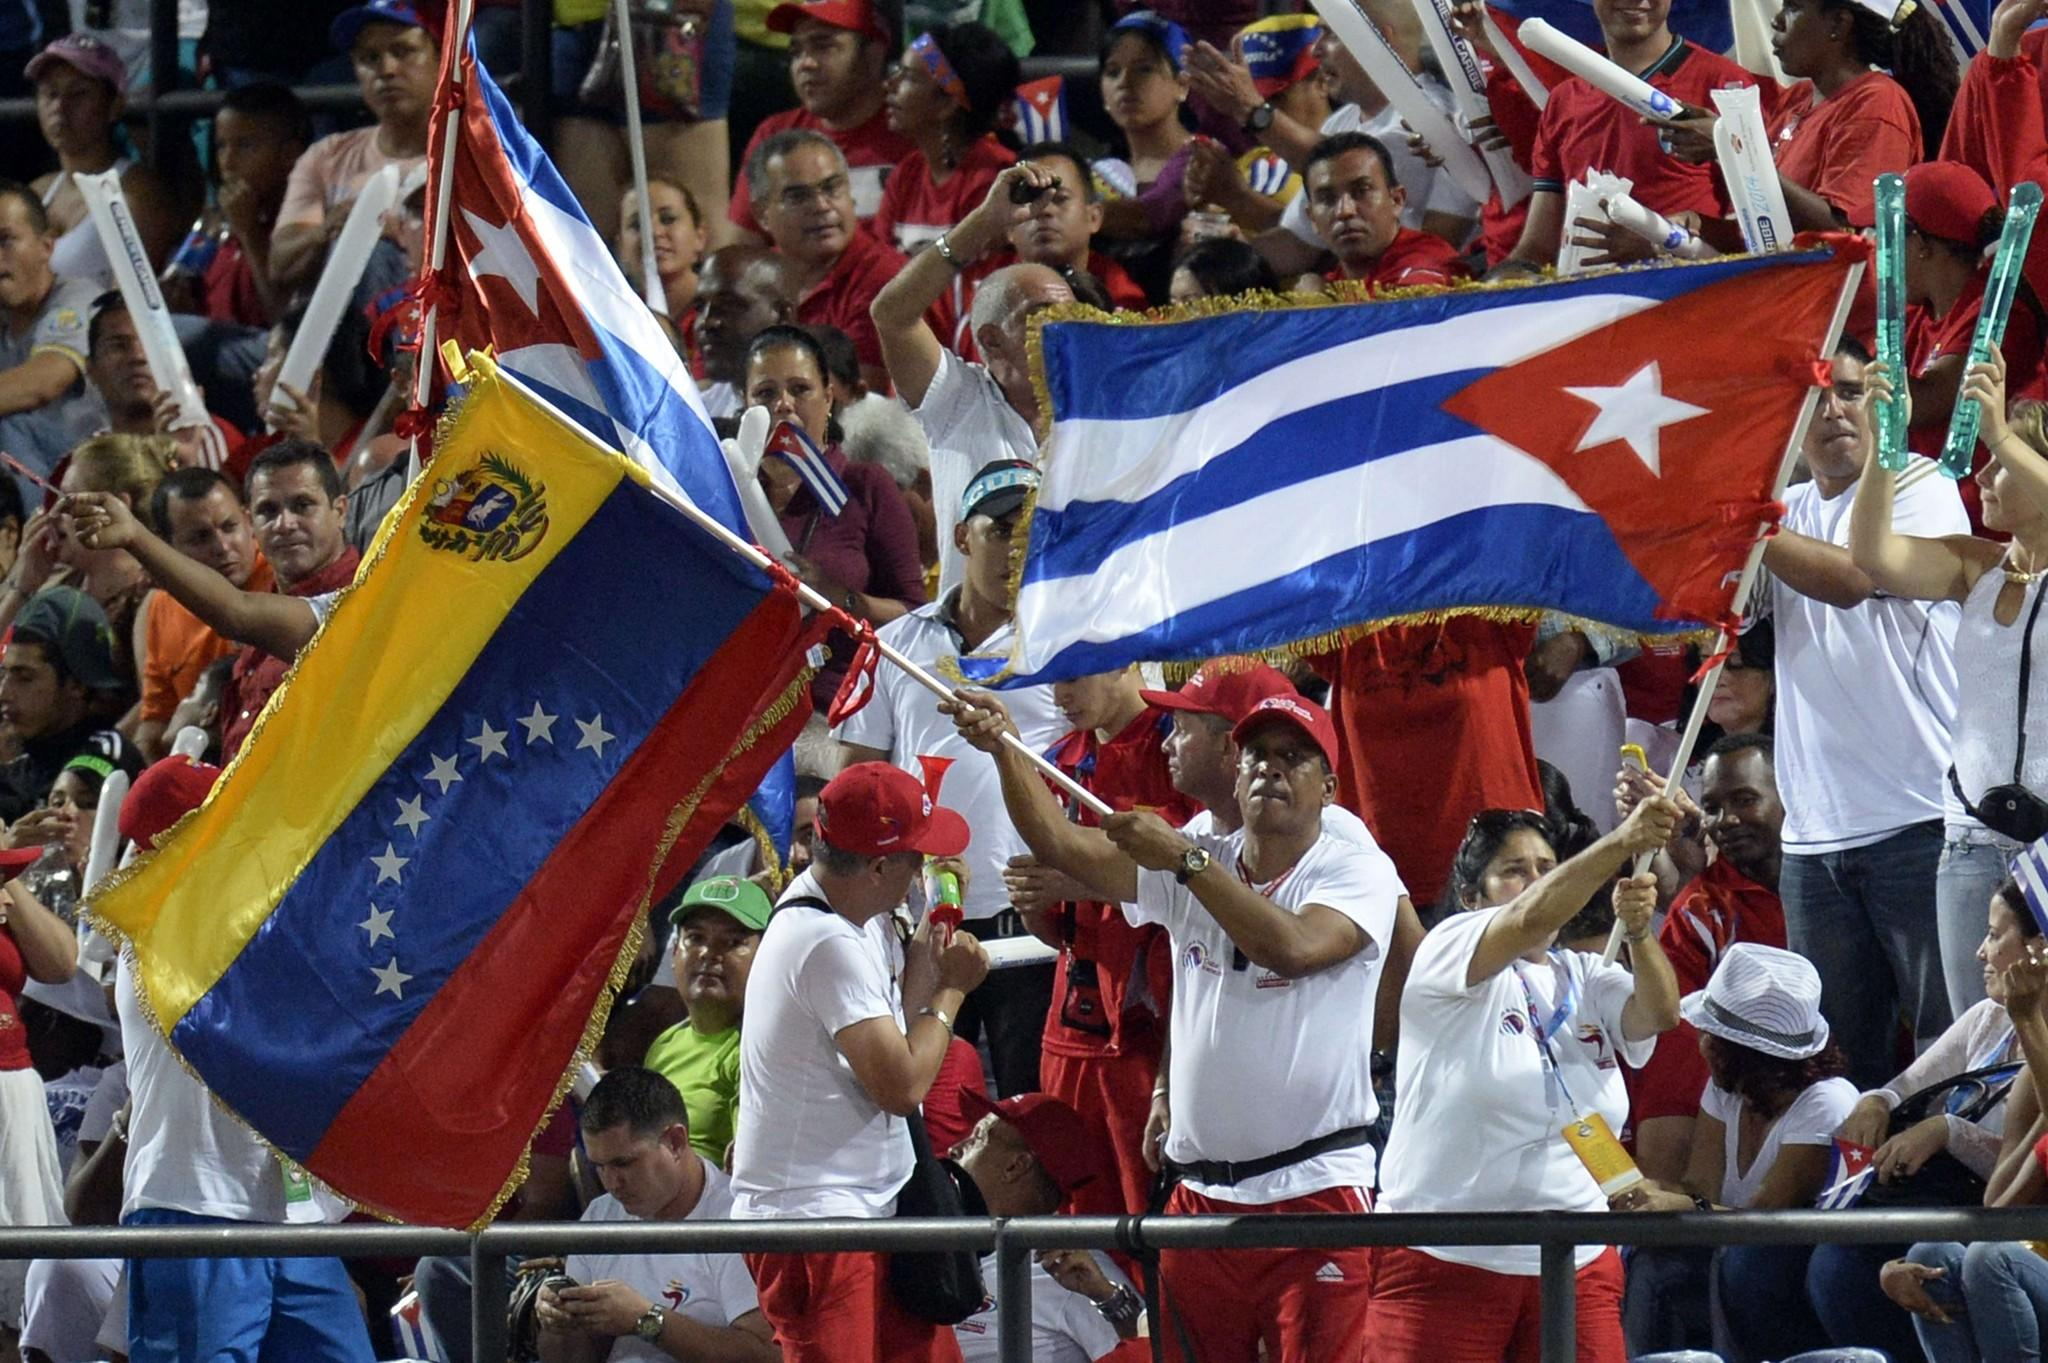 Supporters of Venezuela's Navegantes del Magallanes and Cuba's Azucareros de Villa Clara wave flags during their 2014 Caribbean baseball series game, in Porlamar, Margarita Island, Nueva Esparta state, Venezuela on February 2, 2014.